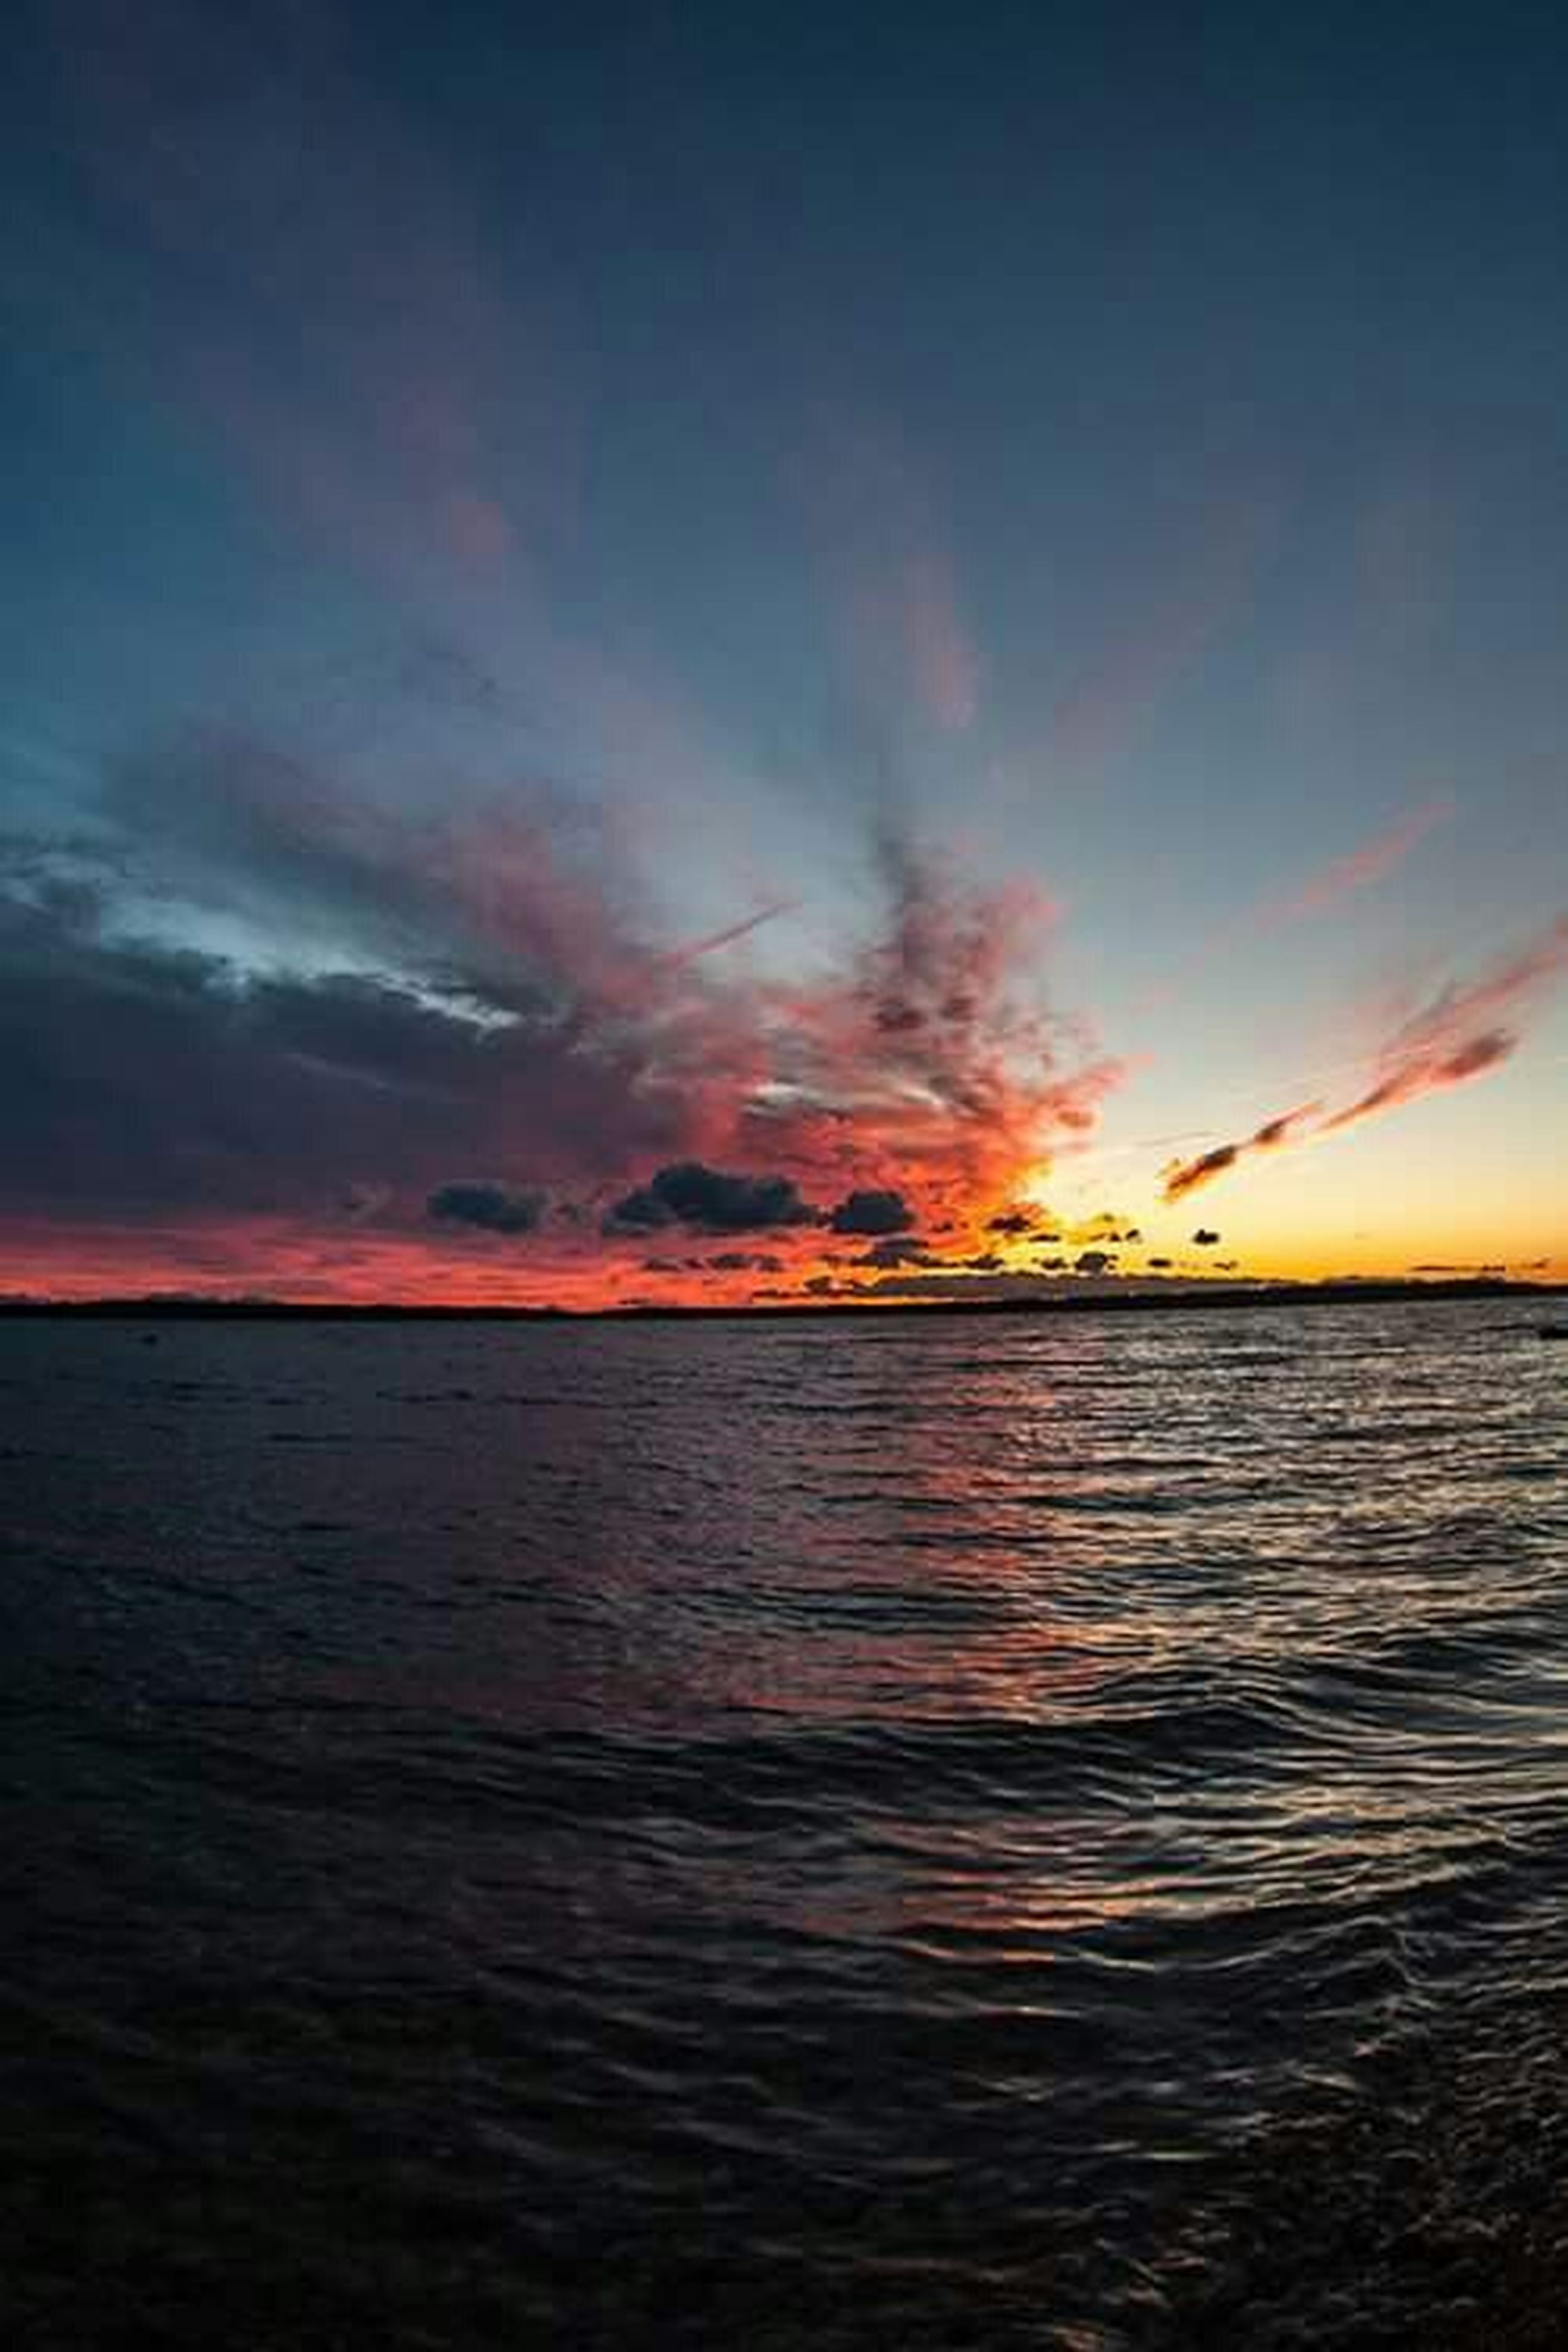 water, sea, sunset, scenics, tranquil scene, sky, horizon over water, beauty in nature, tranquility, waterfront, idyllic, nature, cloud - sky, rippled, reflection, cloud, seascape, orange color, outdoors, dusk